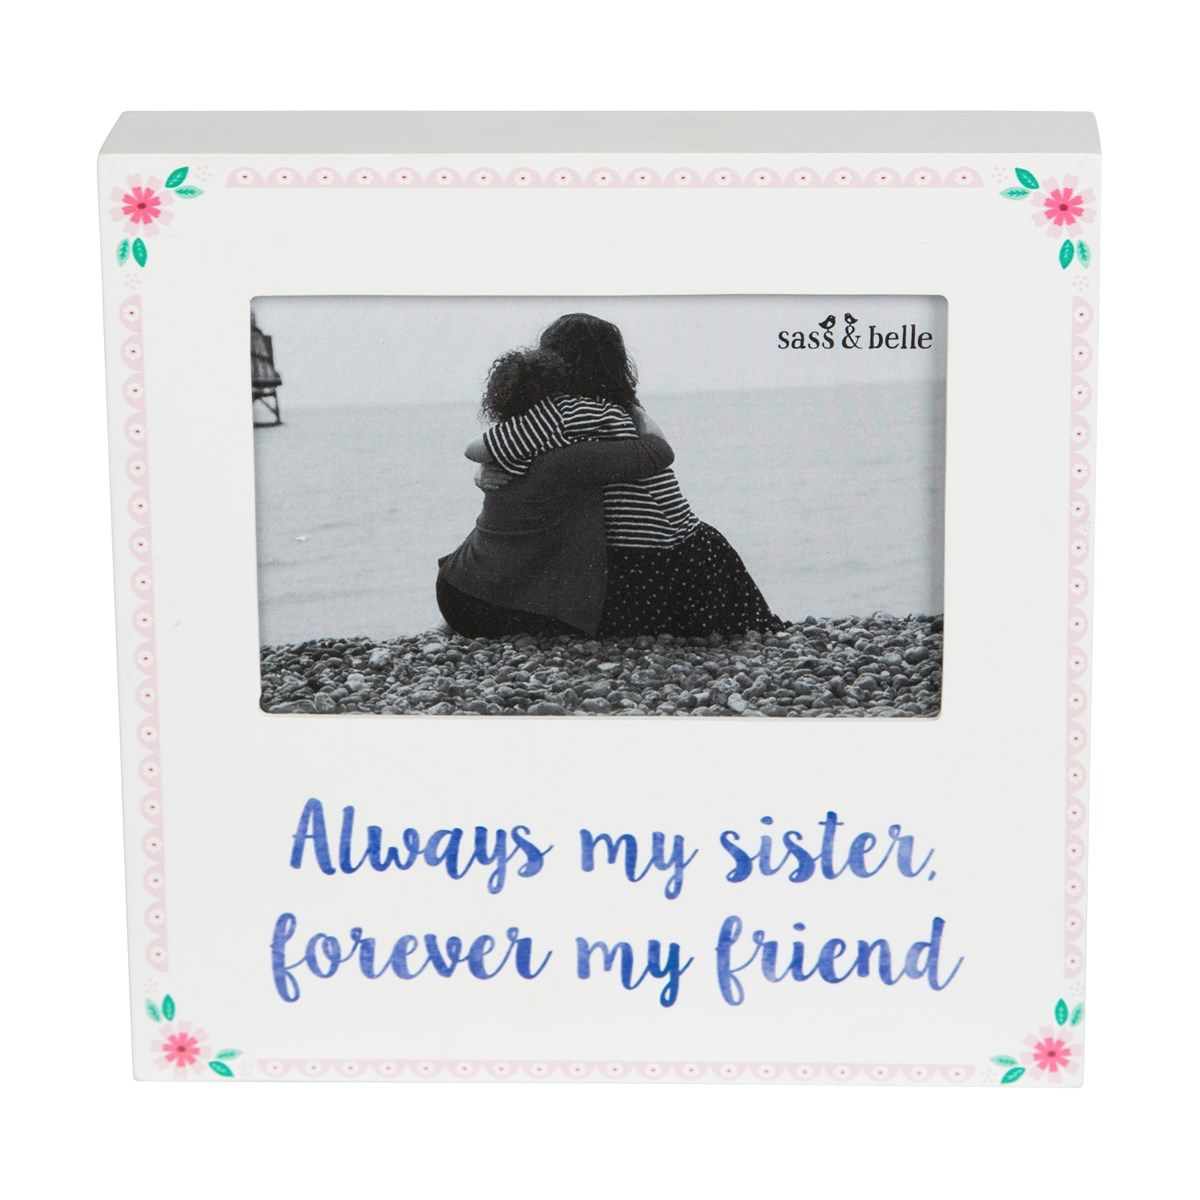 Sass Belle - White 6x4 Always My Sister Photo Box Frame | Sass ...